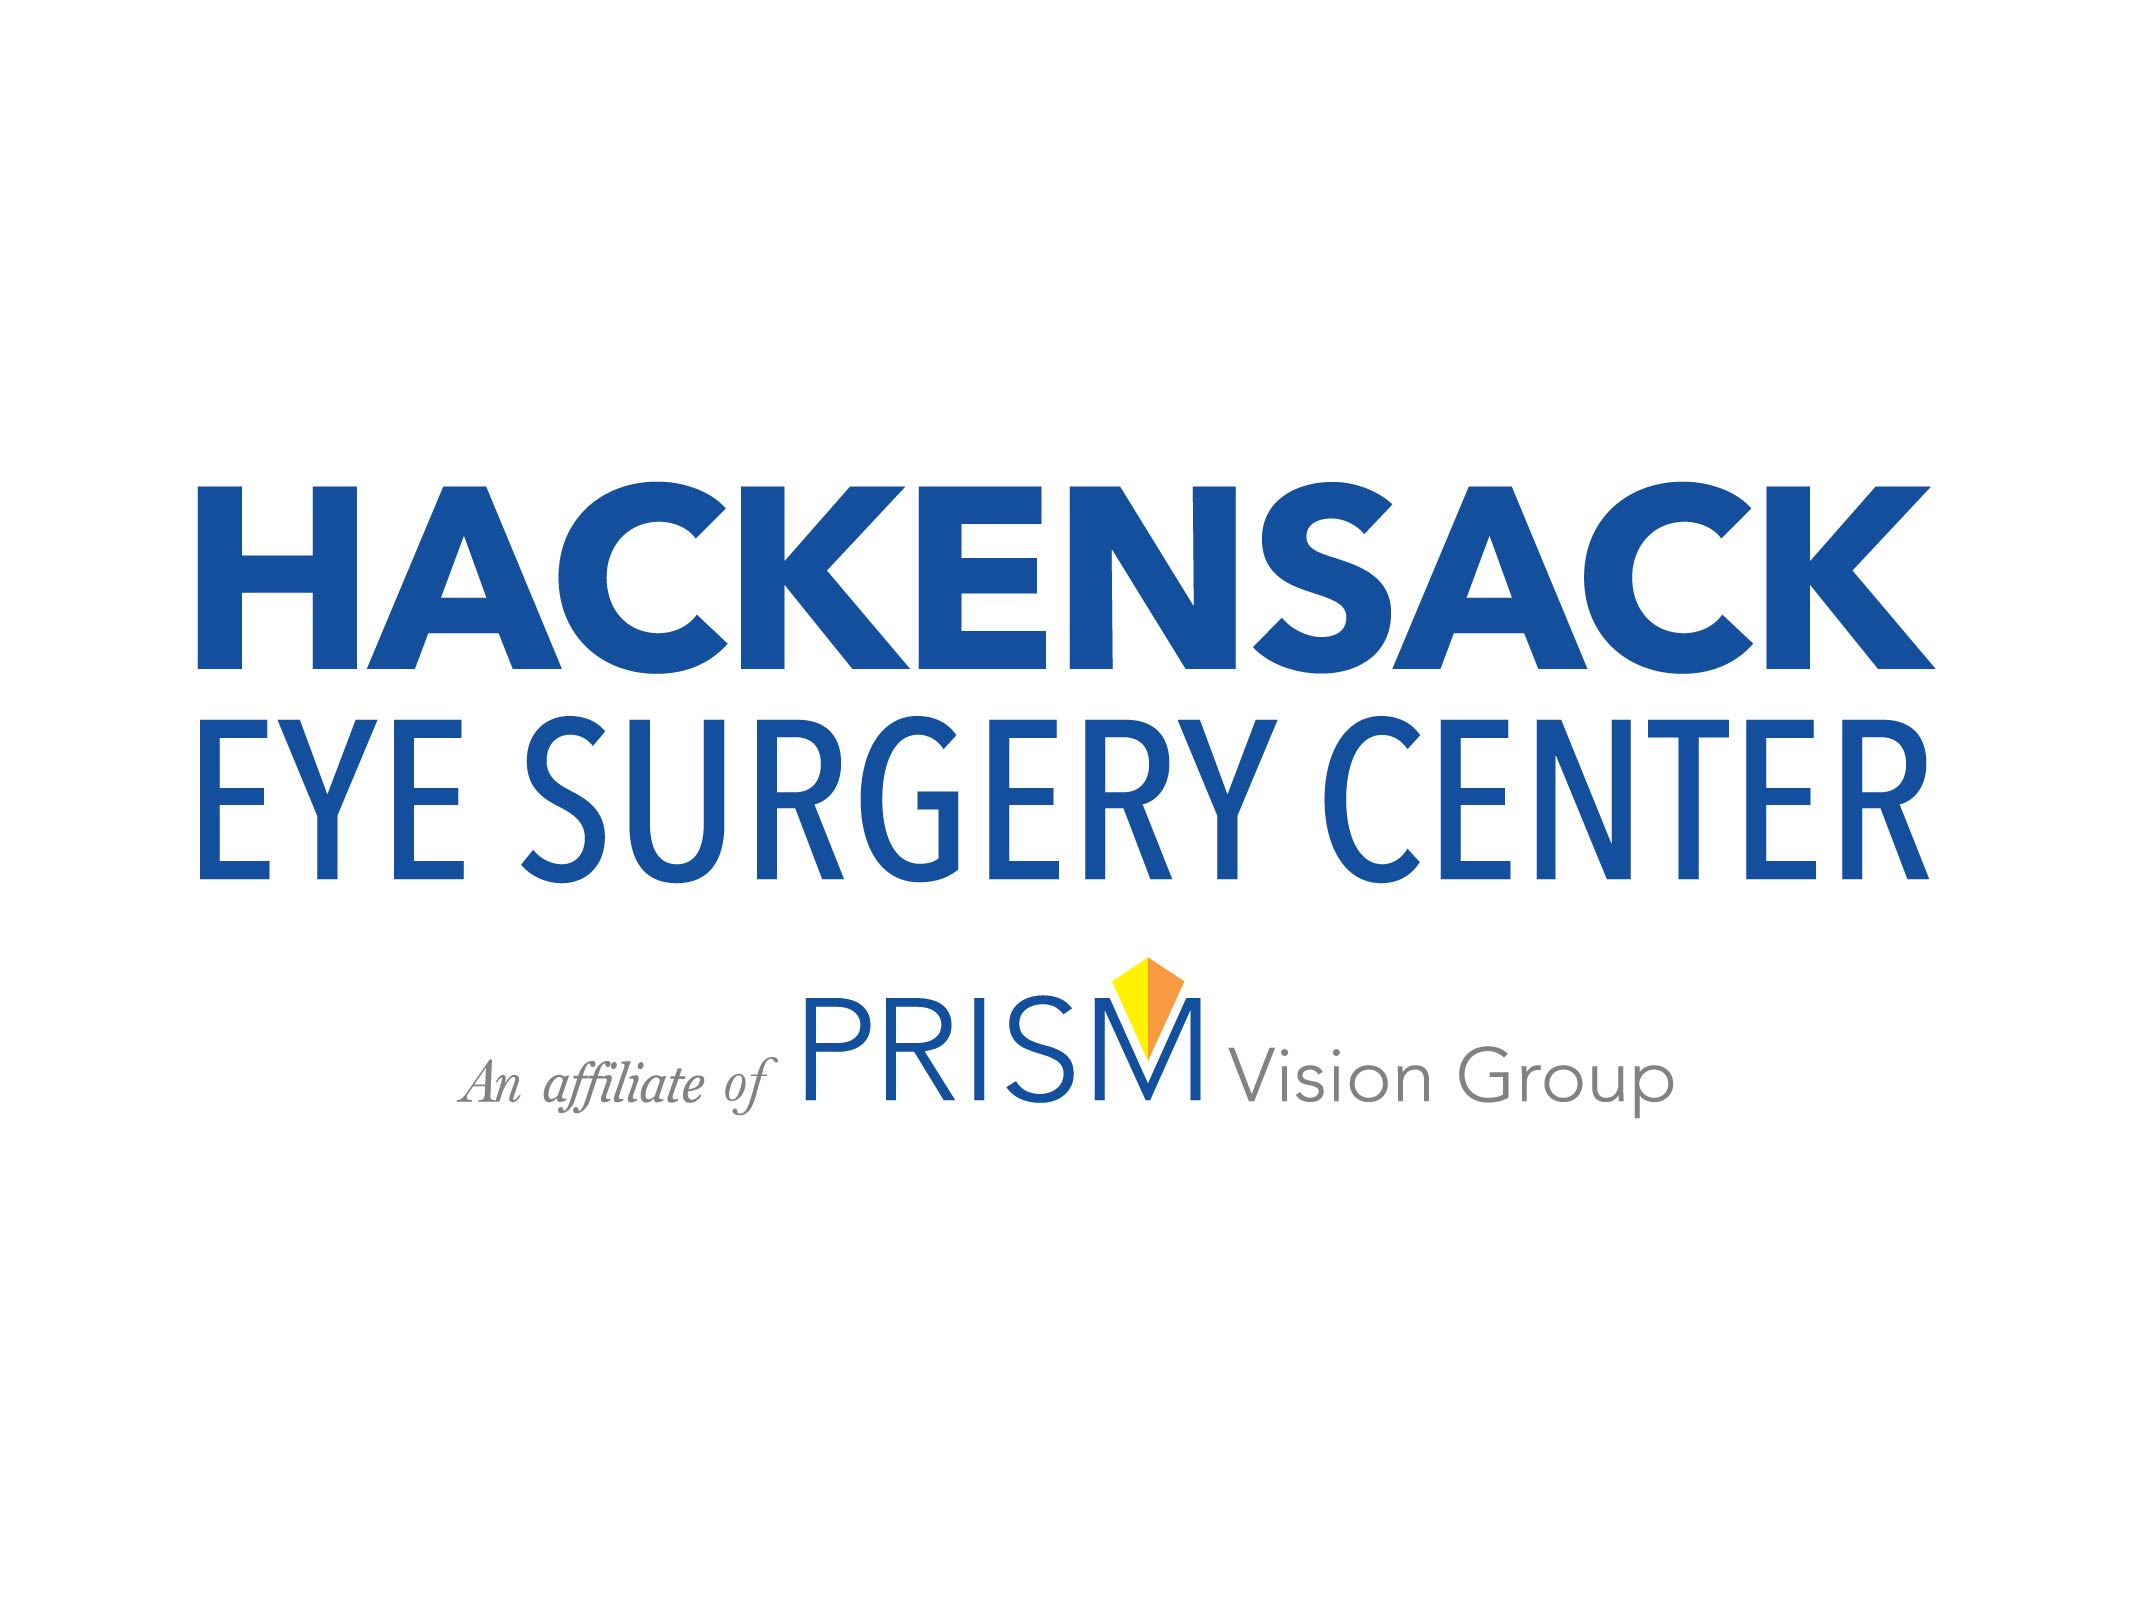 Hackensack Eye Surgery Center logo